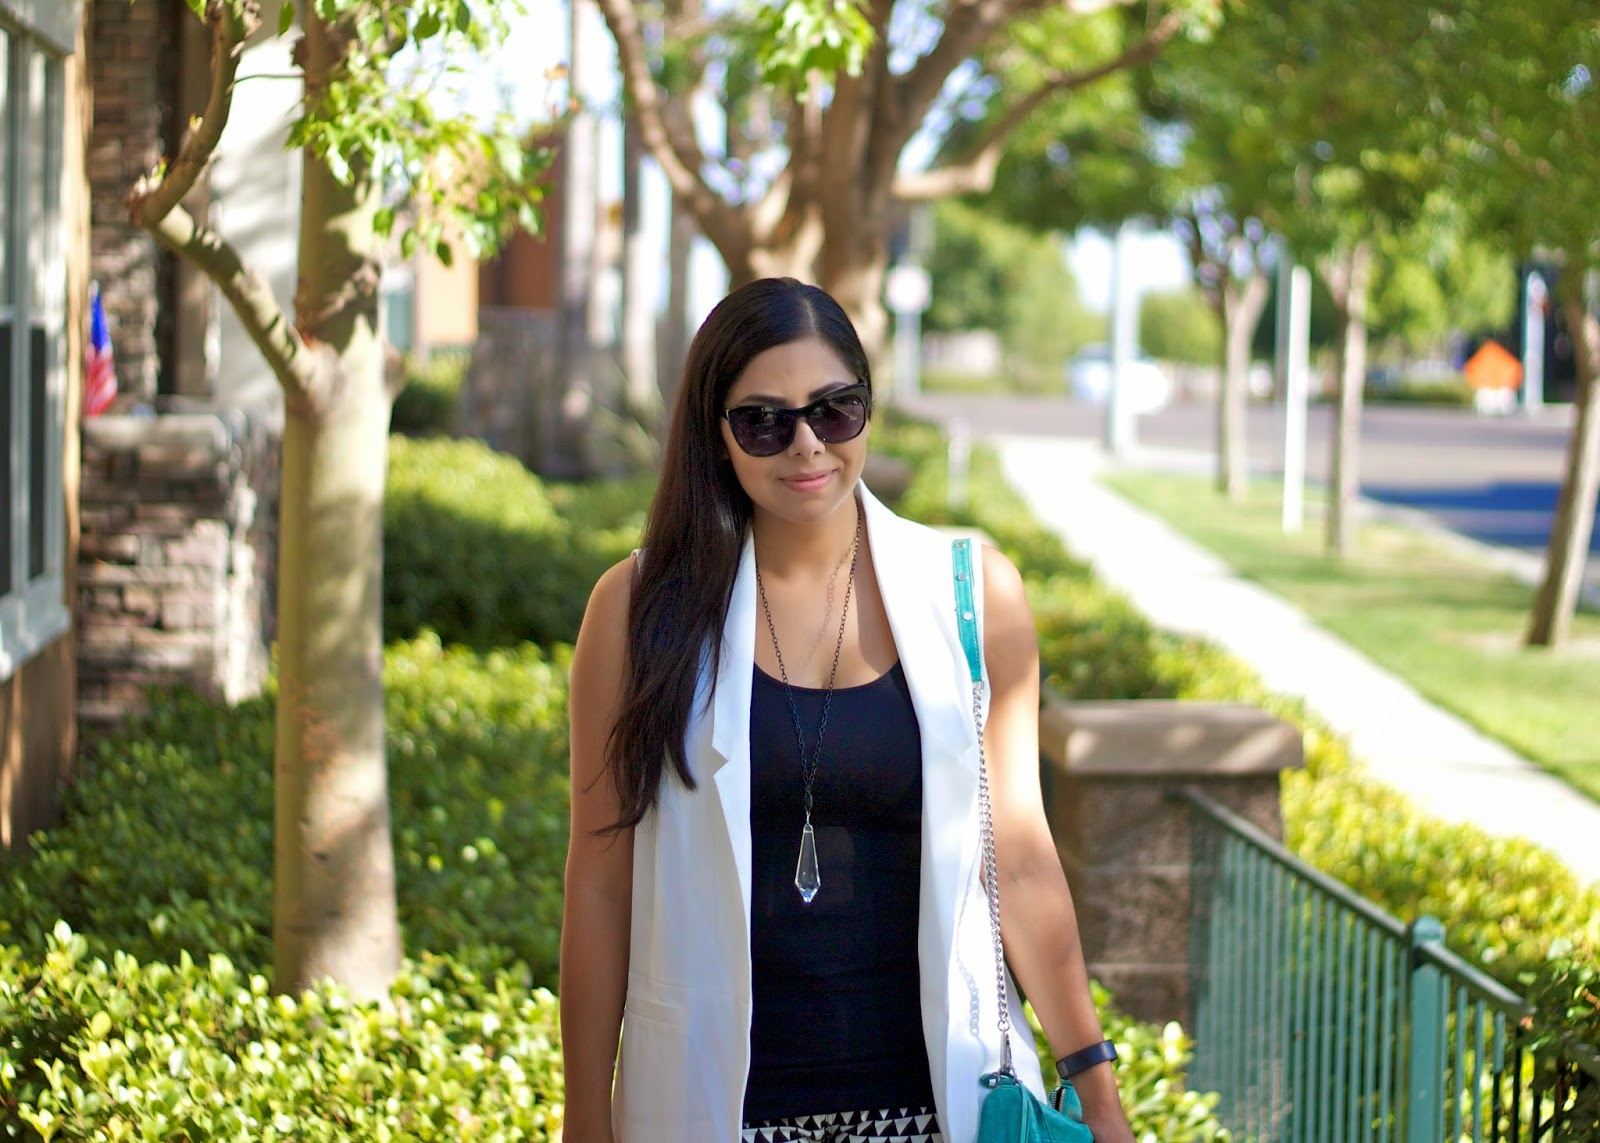 forever 21 black cateye sunglasses, San diego fashion blogger, san diego style blogger, best san diego fashion blog, notable fashion blog in san diego